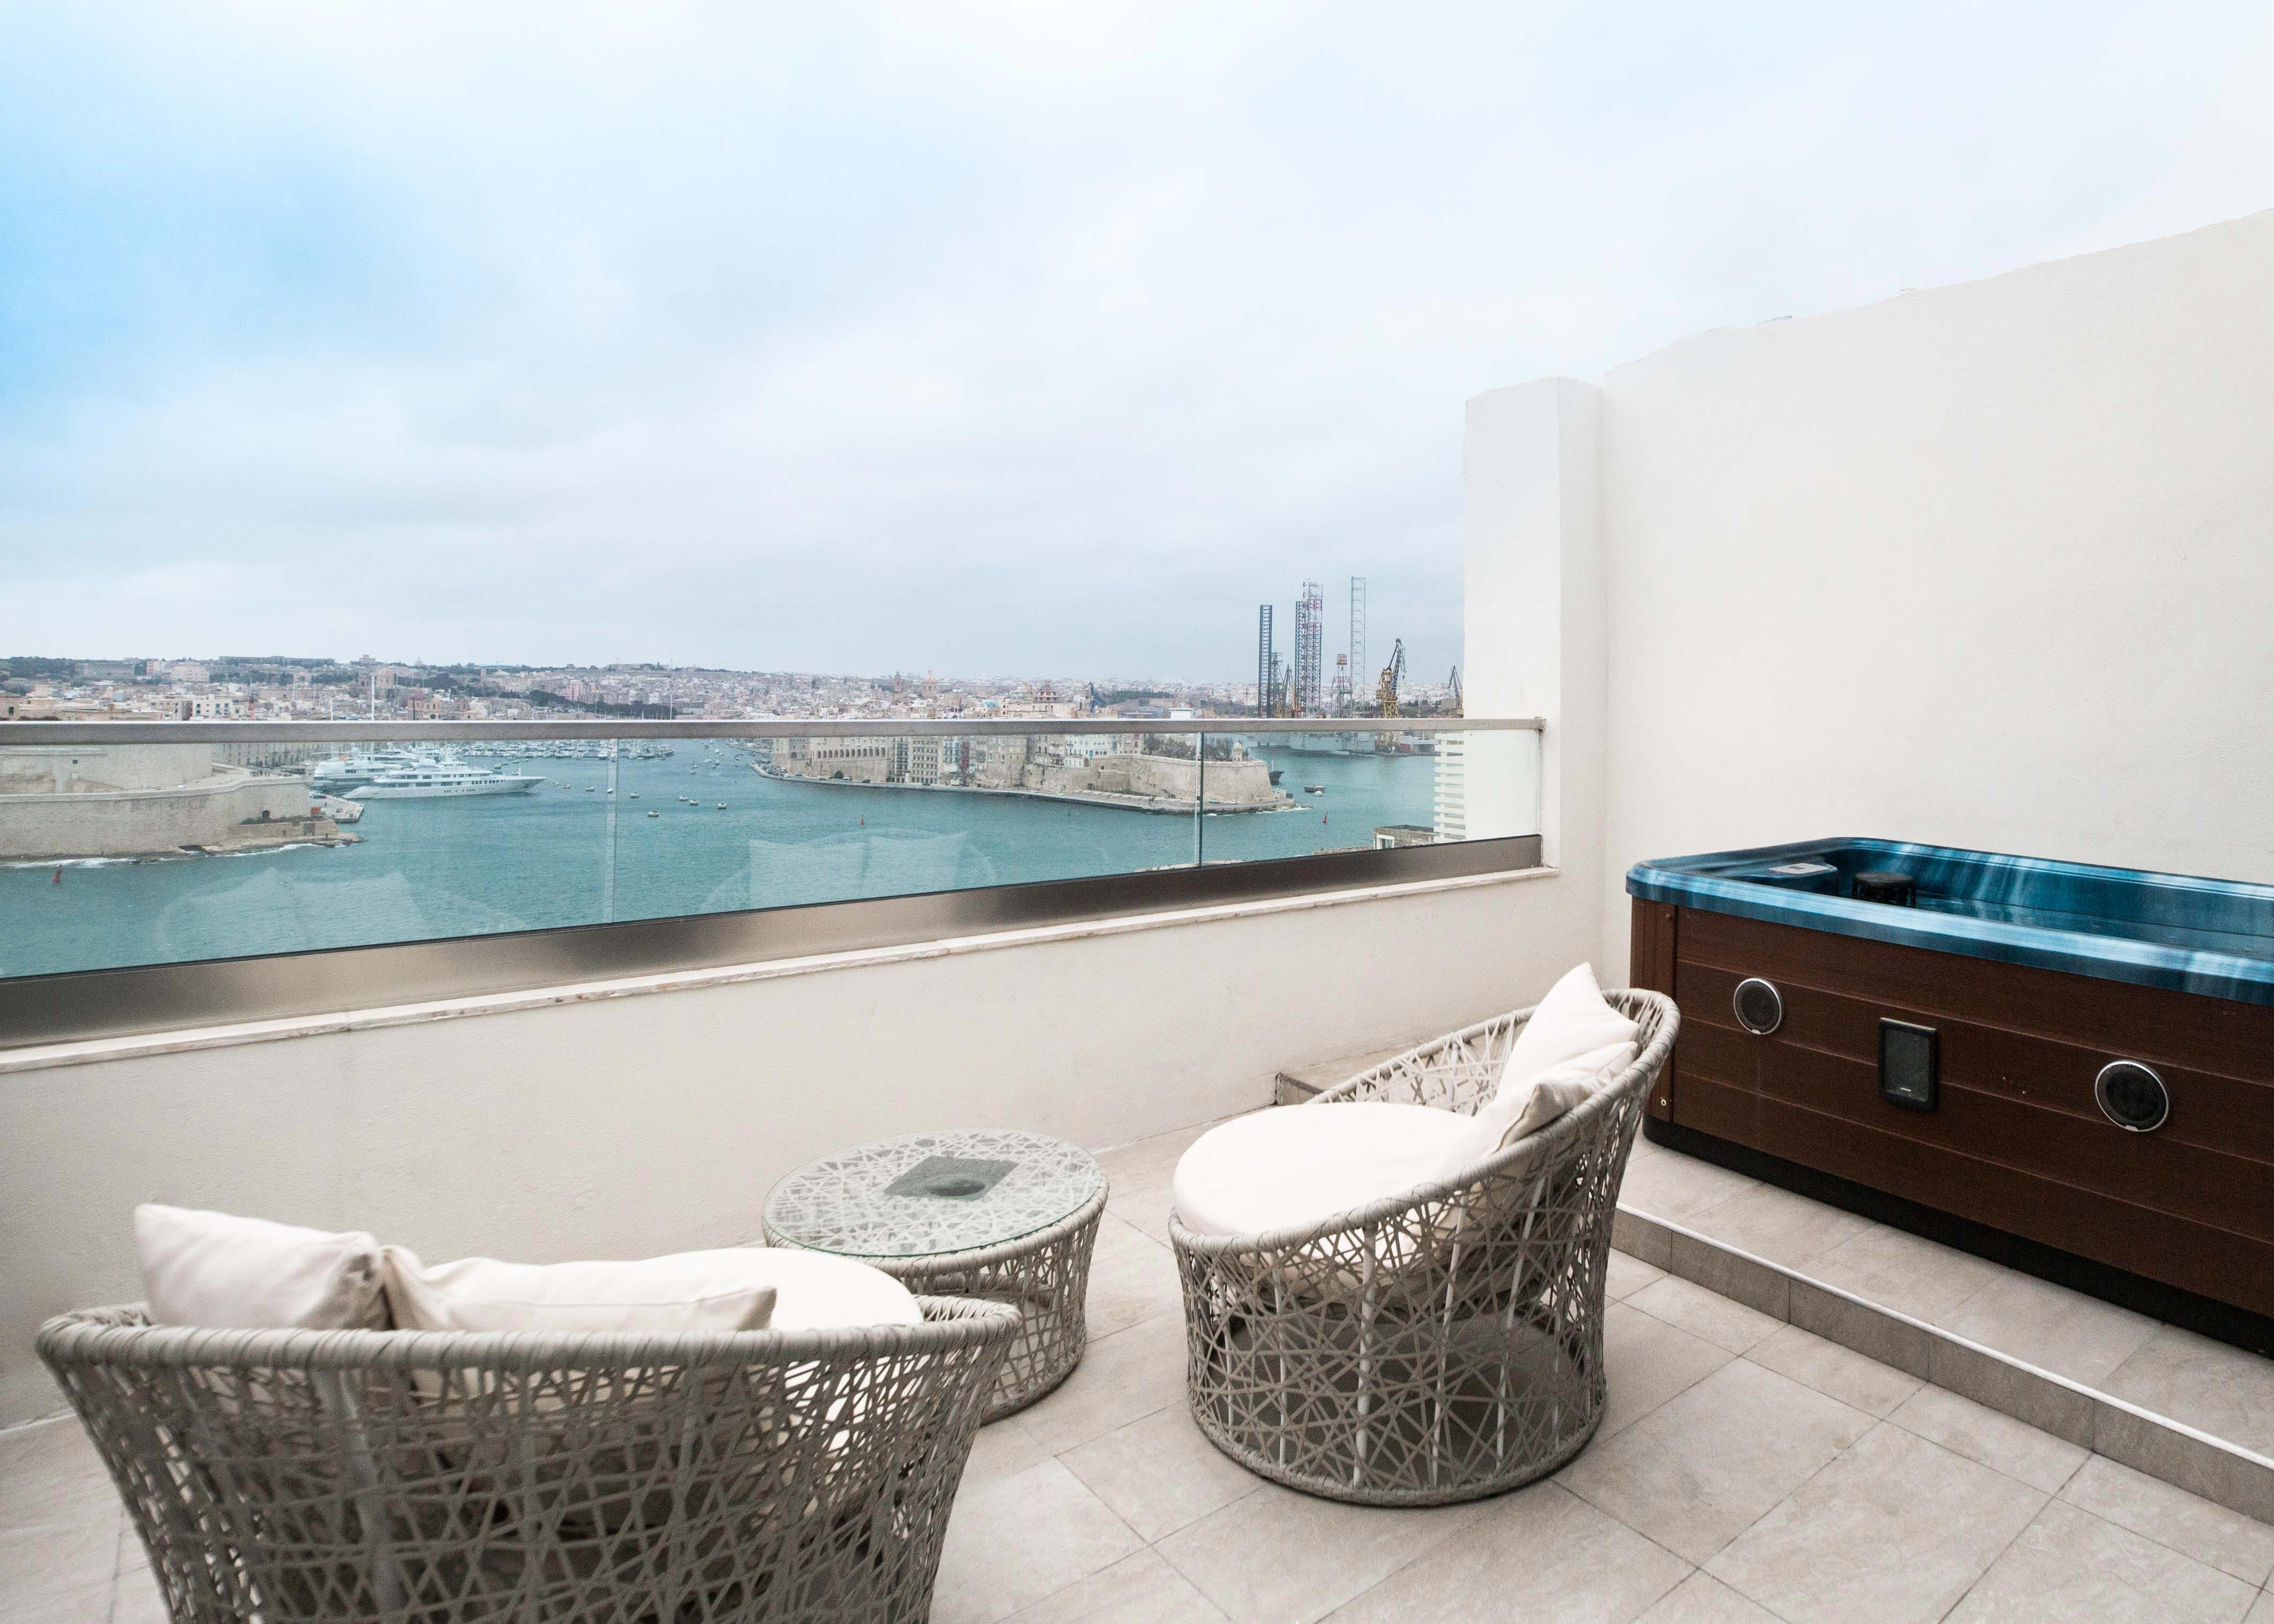 Room with terrace and great view, best hotel to stay in Malta